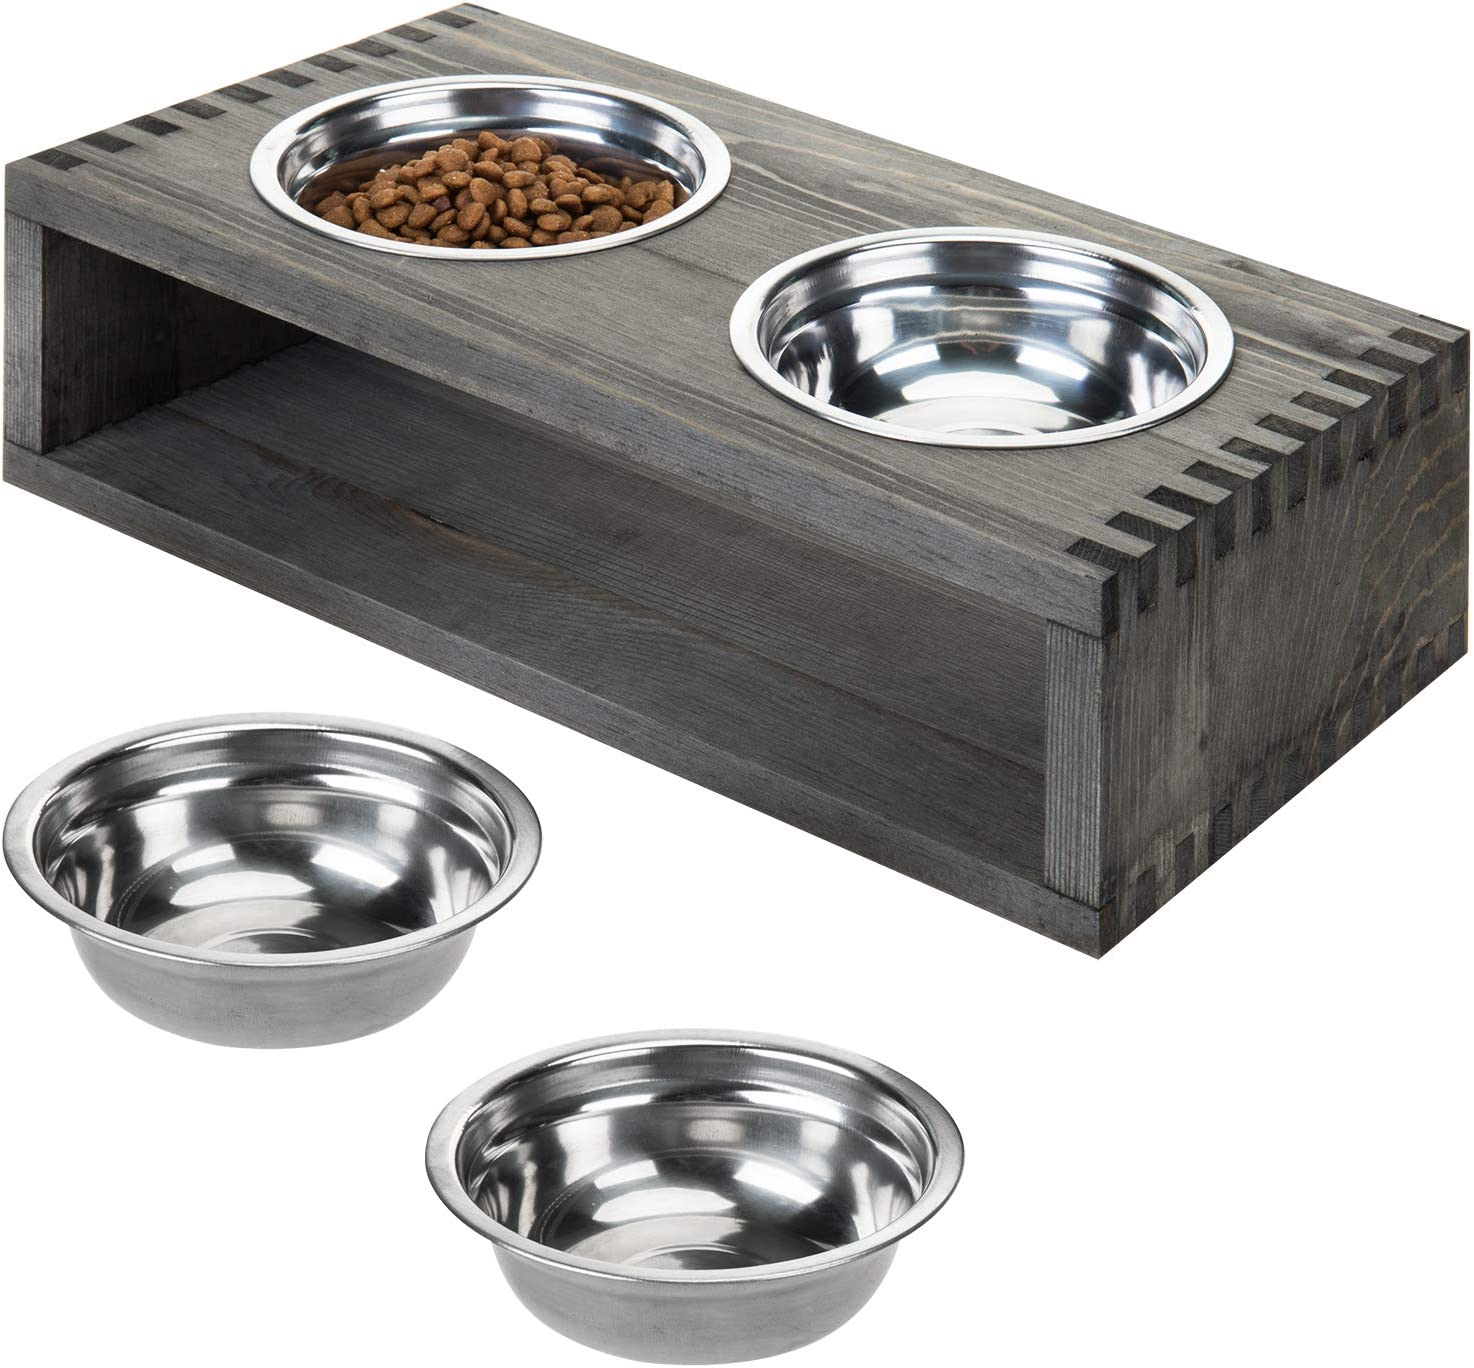 MyGift Vintage Gray Wood Small Double Pet Dog or Cat Raised Feeder Stand with 4 Removable Stainless Steel Bowls